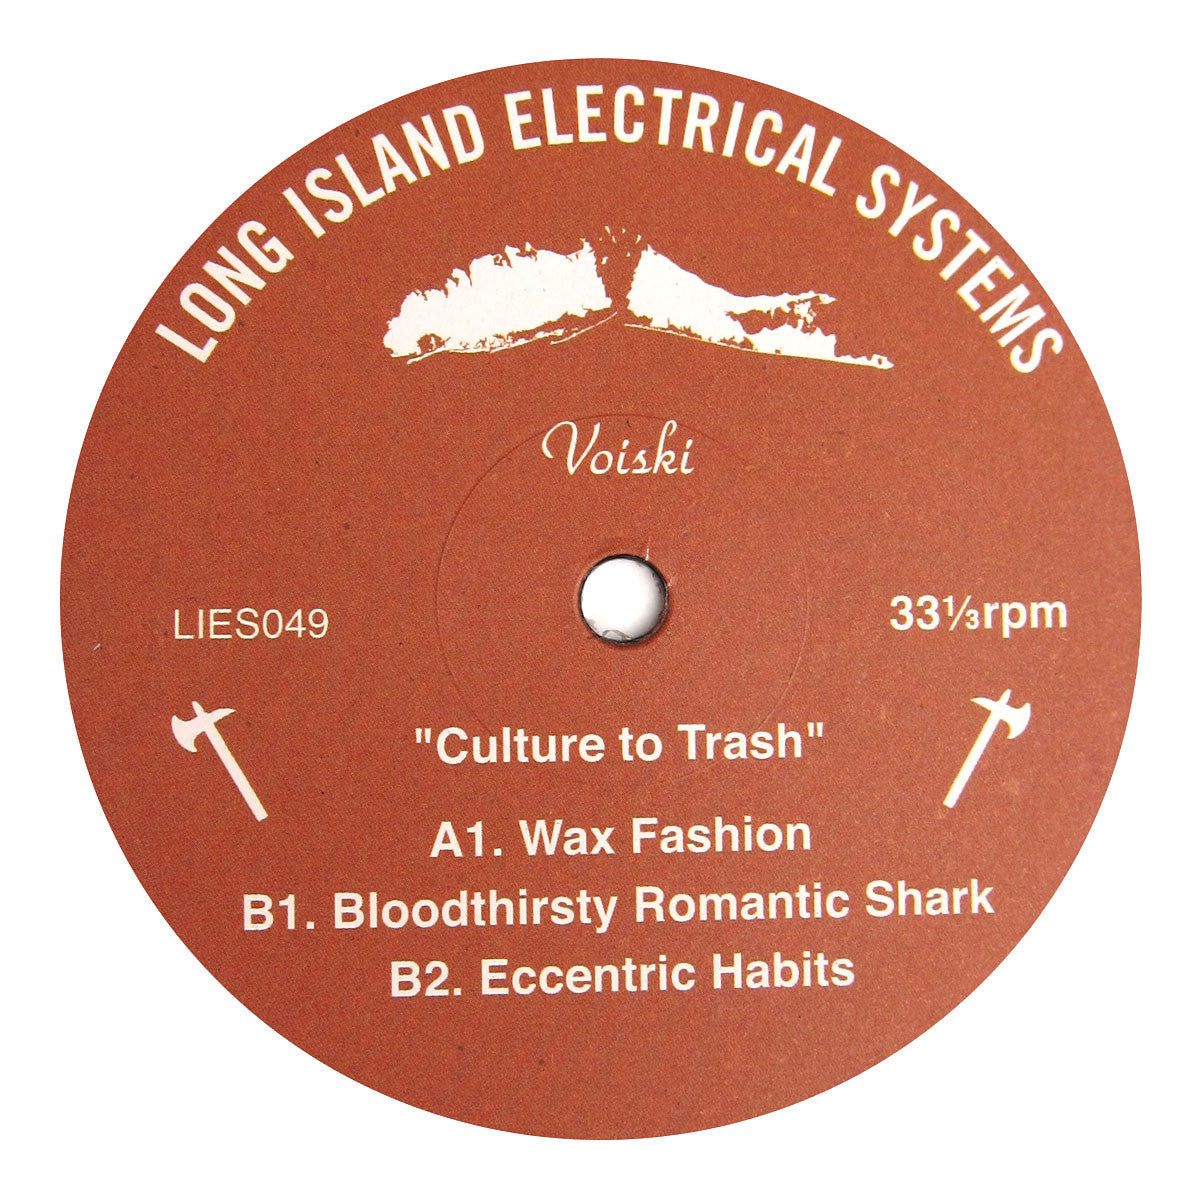 Voiski: Culture to Trash Vinyl 12""